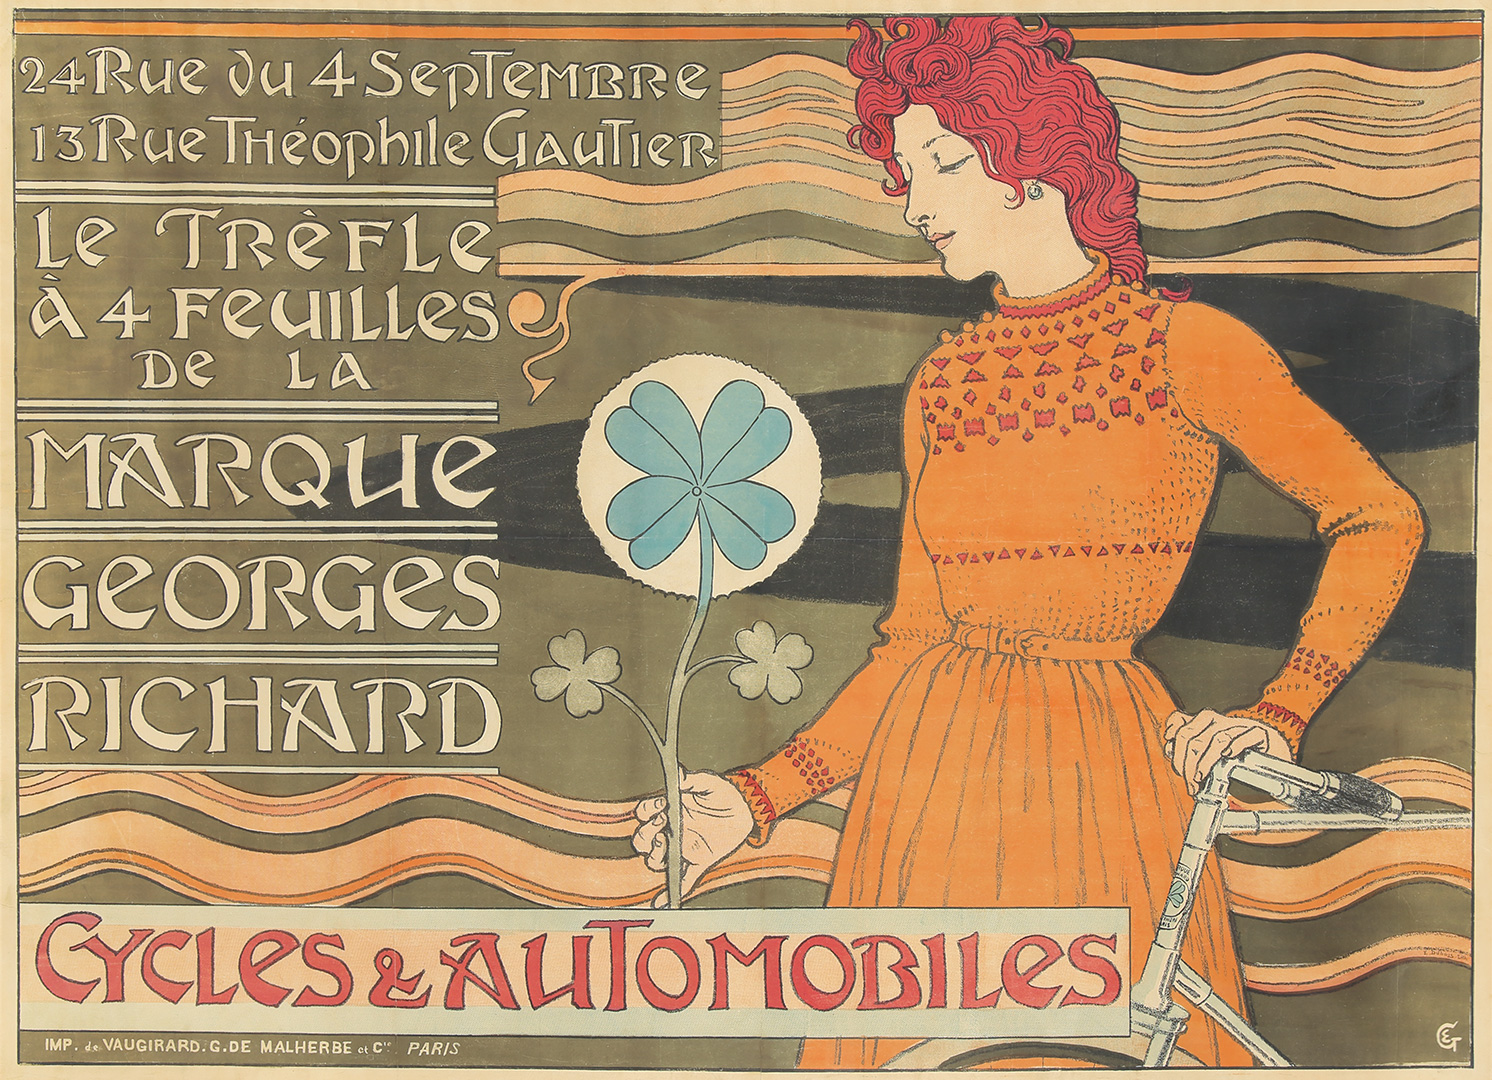 26. Marque Georges Richard / Cycles & Automobiles. 1899.